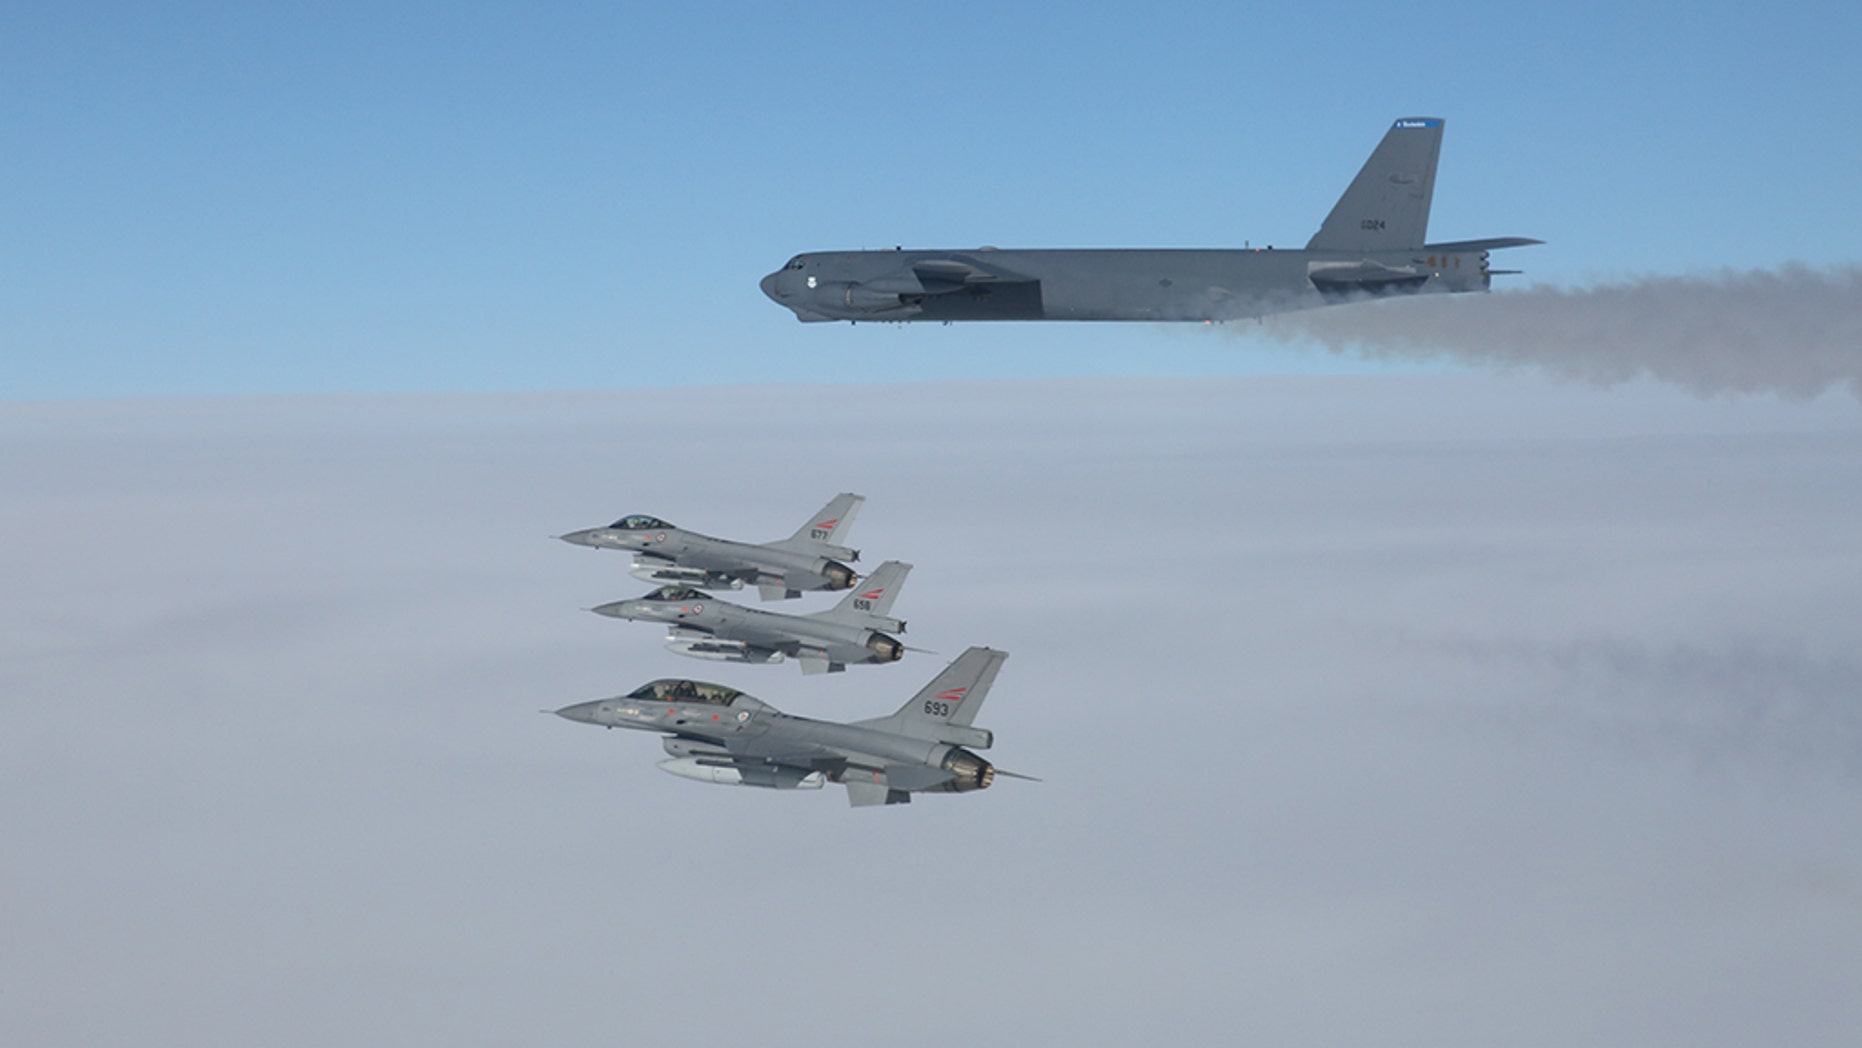 A U.S. B-52 Stratofortresses, deployed from Barksdale Air Force Base, La., flies in formation with three Norwegian F-16 Fighting Falcons over Norway, March 28, 2019.